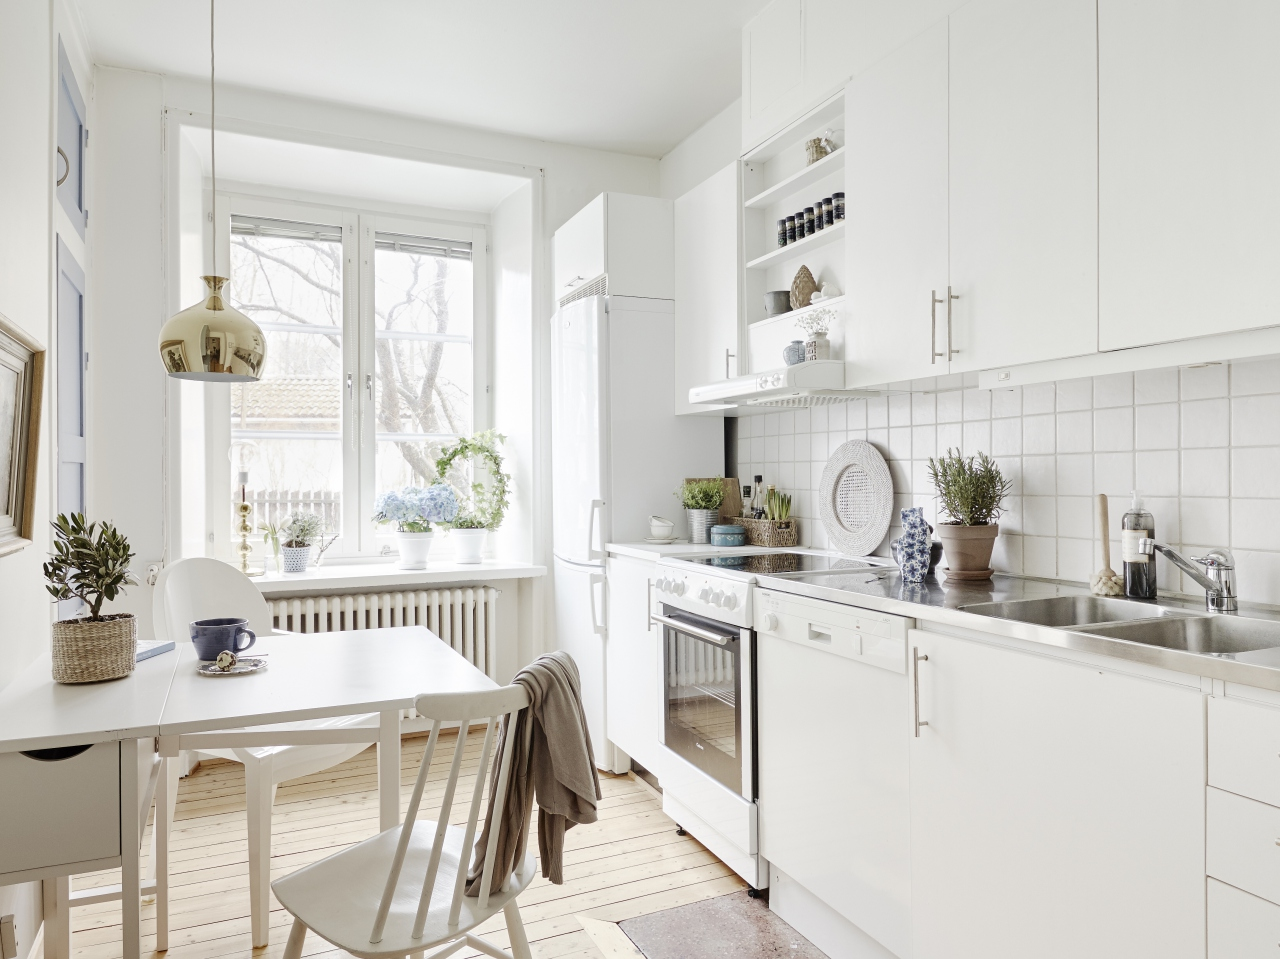 01-white-kitchen